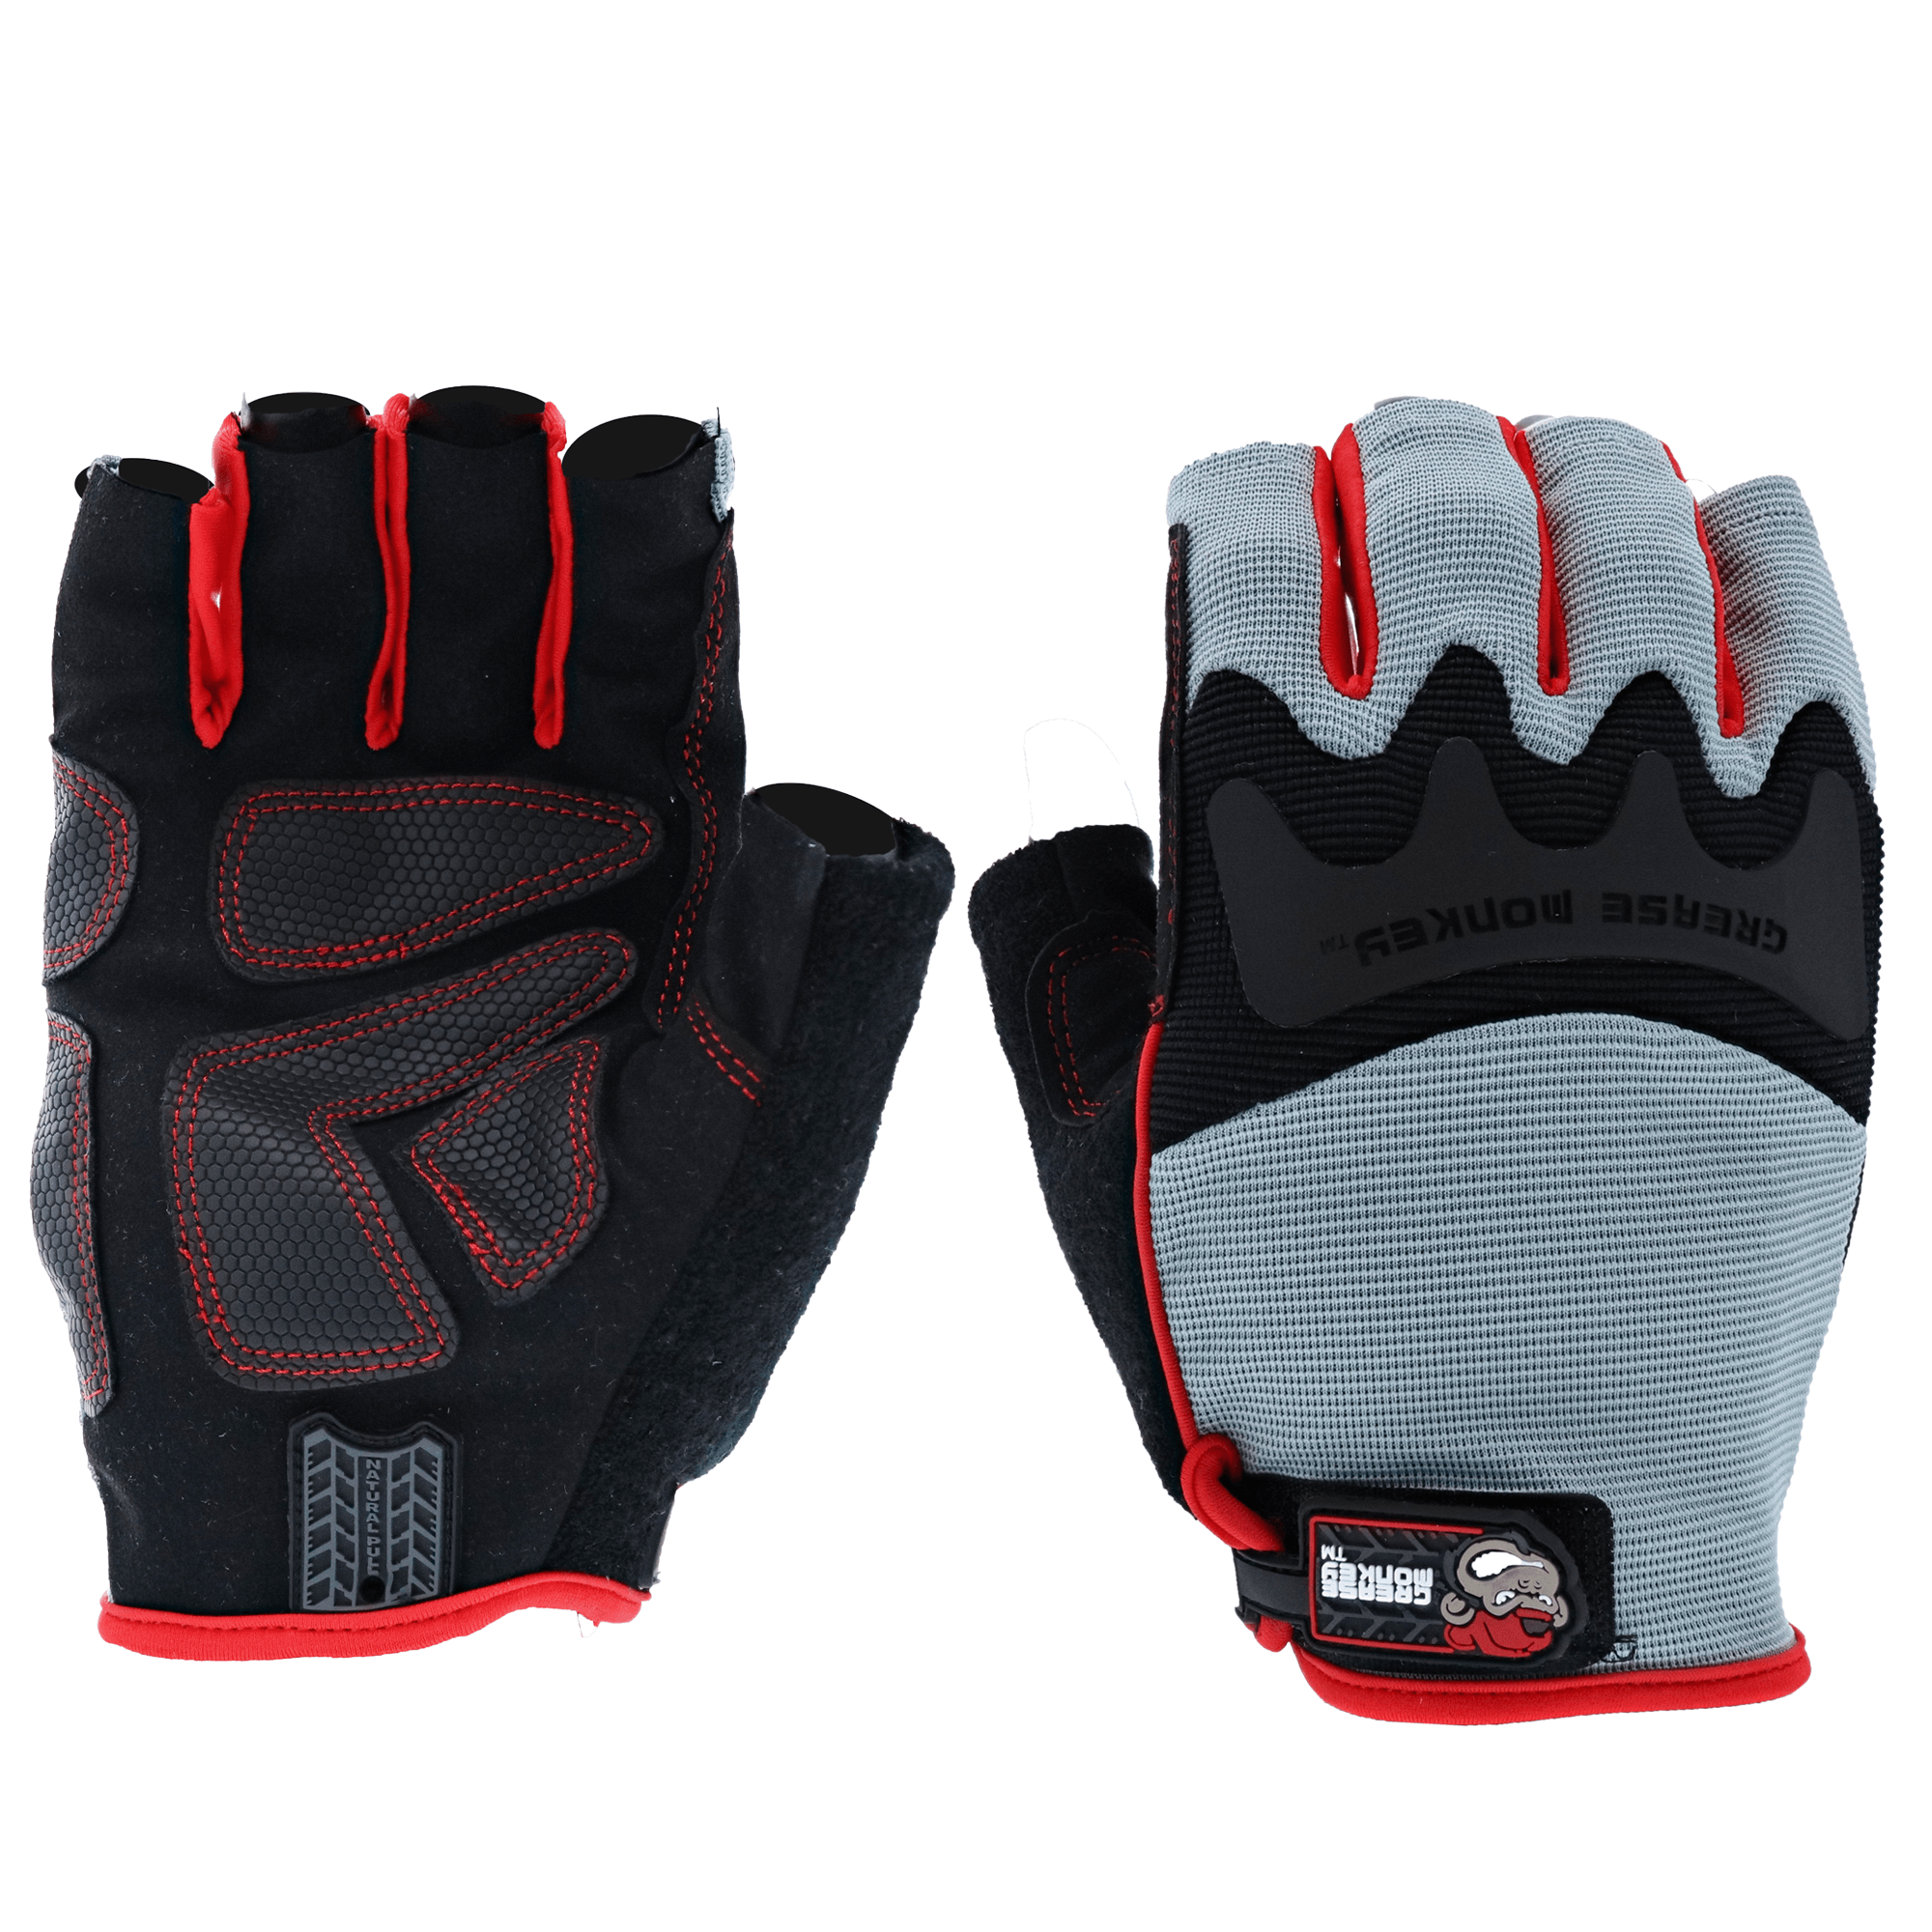 Grease Monkey Pro Fingerless all purpose work gloves and workout gloves